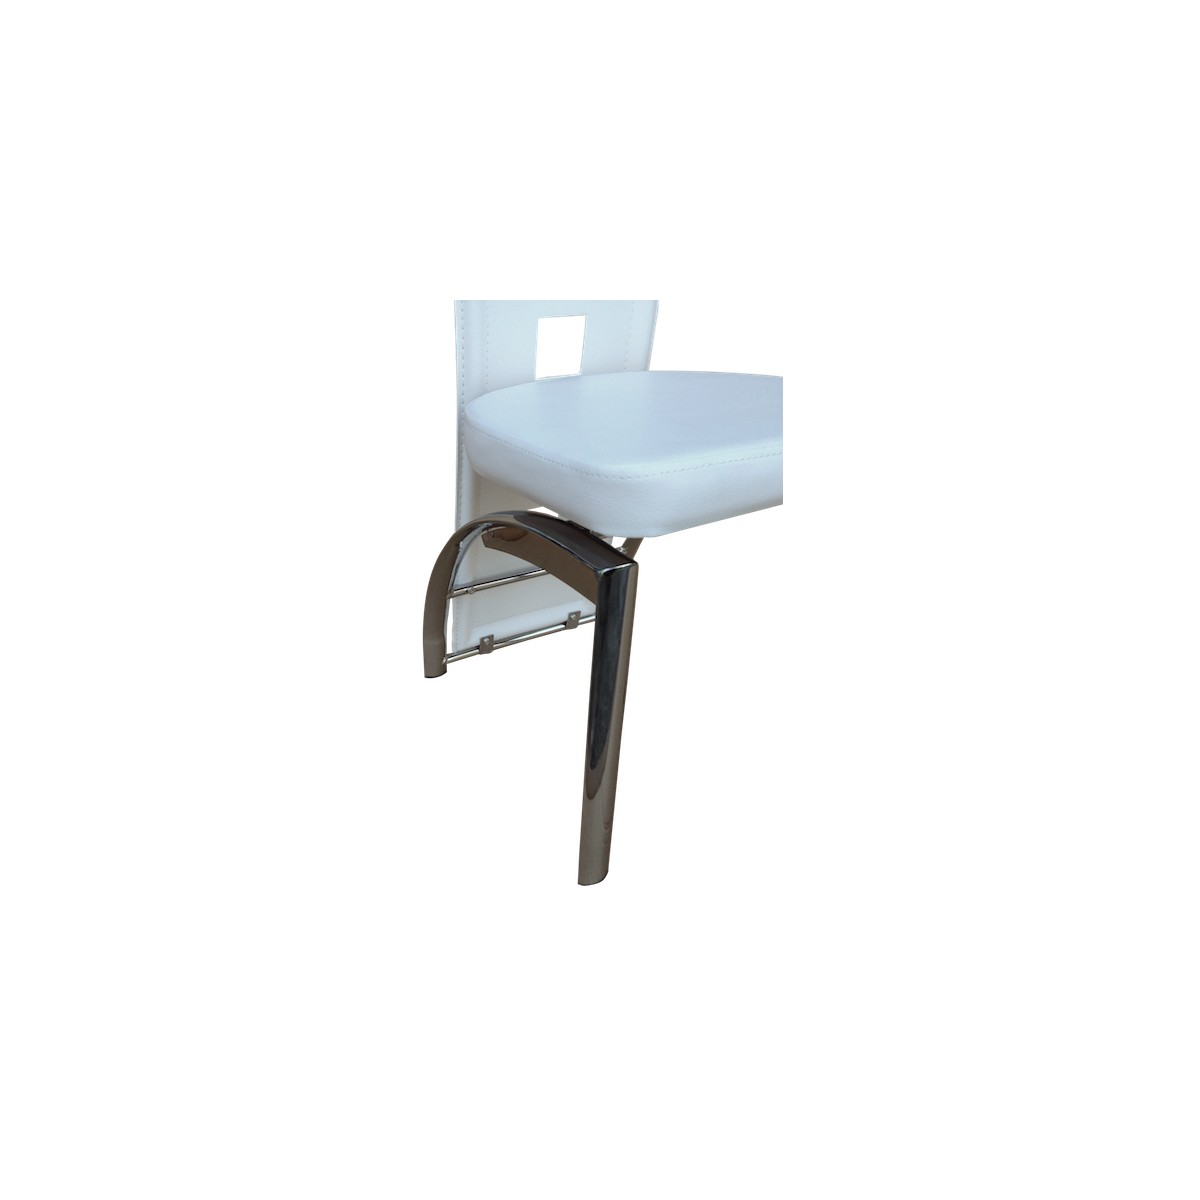 Enzo lot 6 chaises blanches pieds chrom s neuf ebay - 6 chaises blanches ...